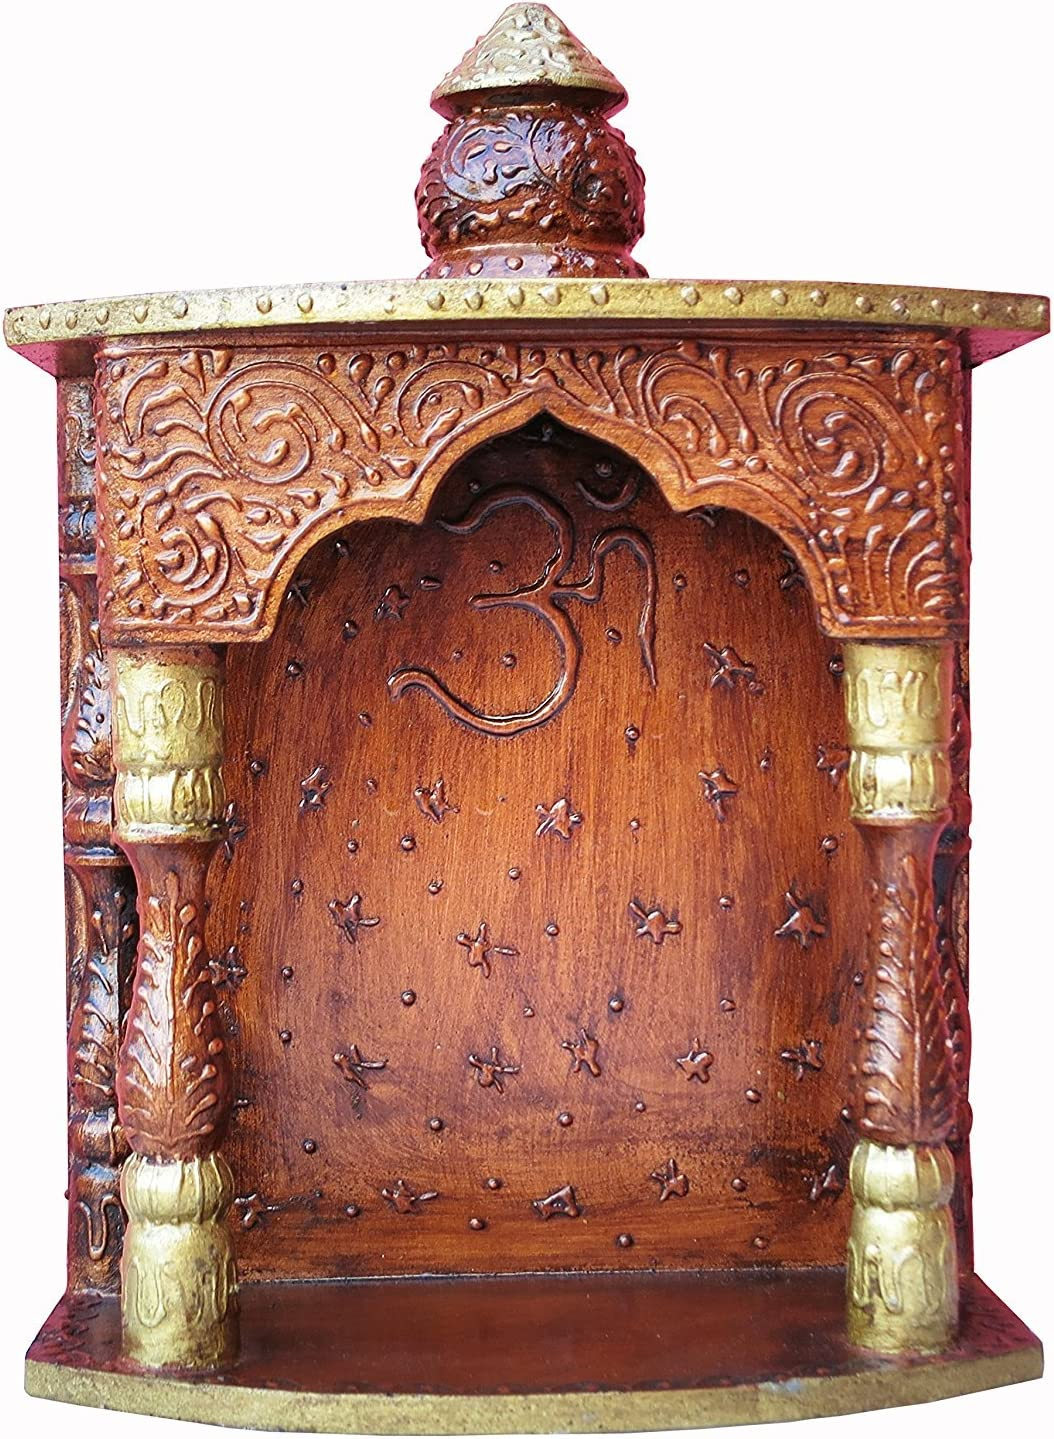 A Temple Made By Wood with Emboss Work and Om Symbol, Must for Every Indian Home Temple/Mandir